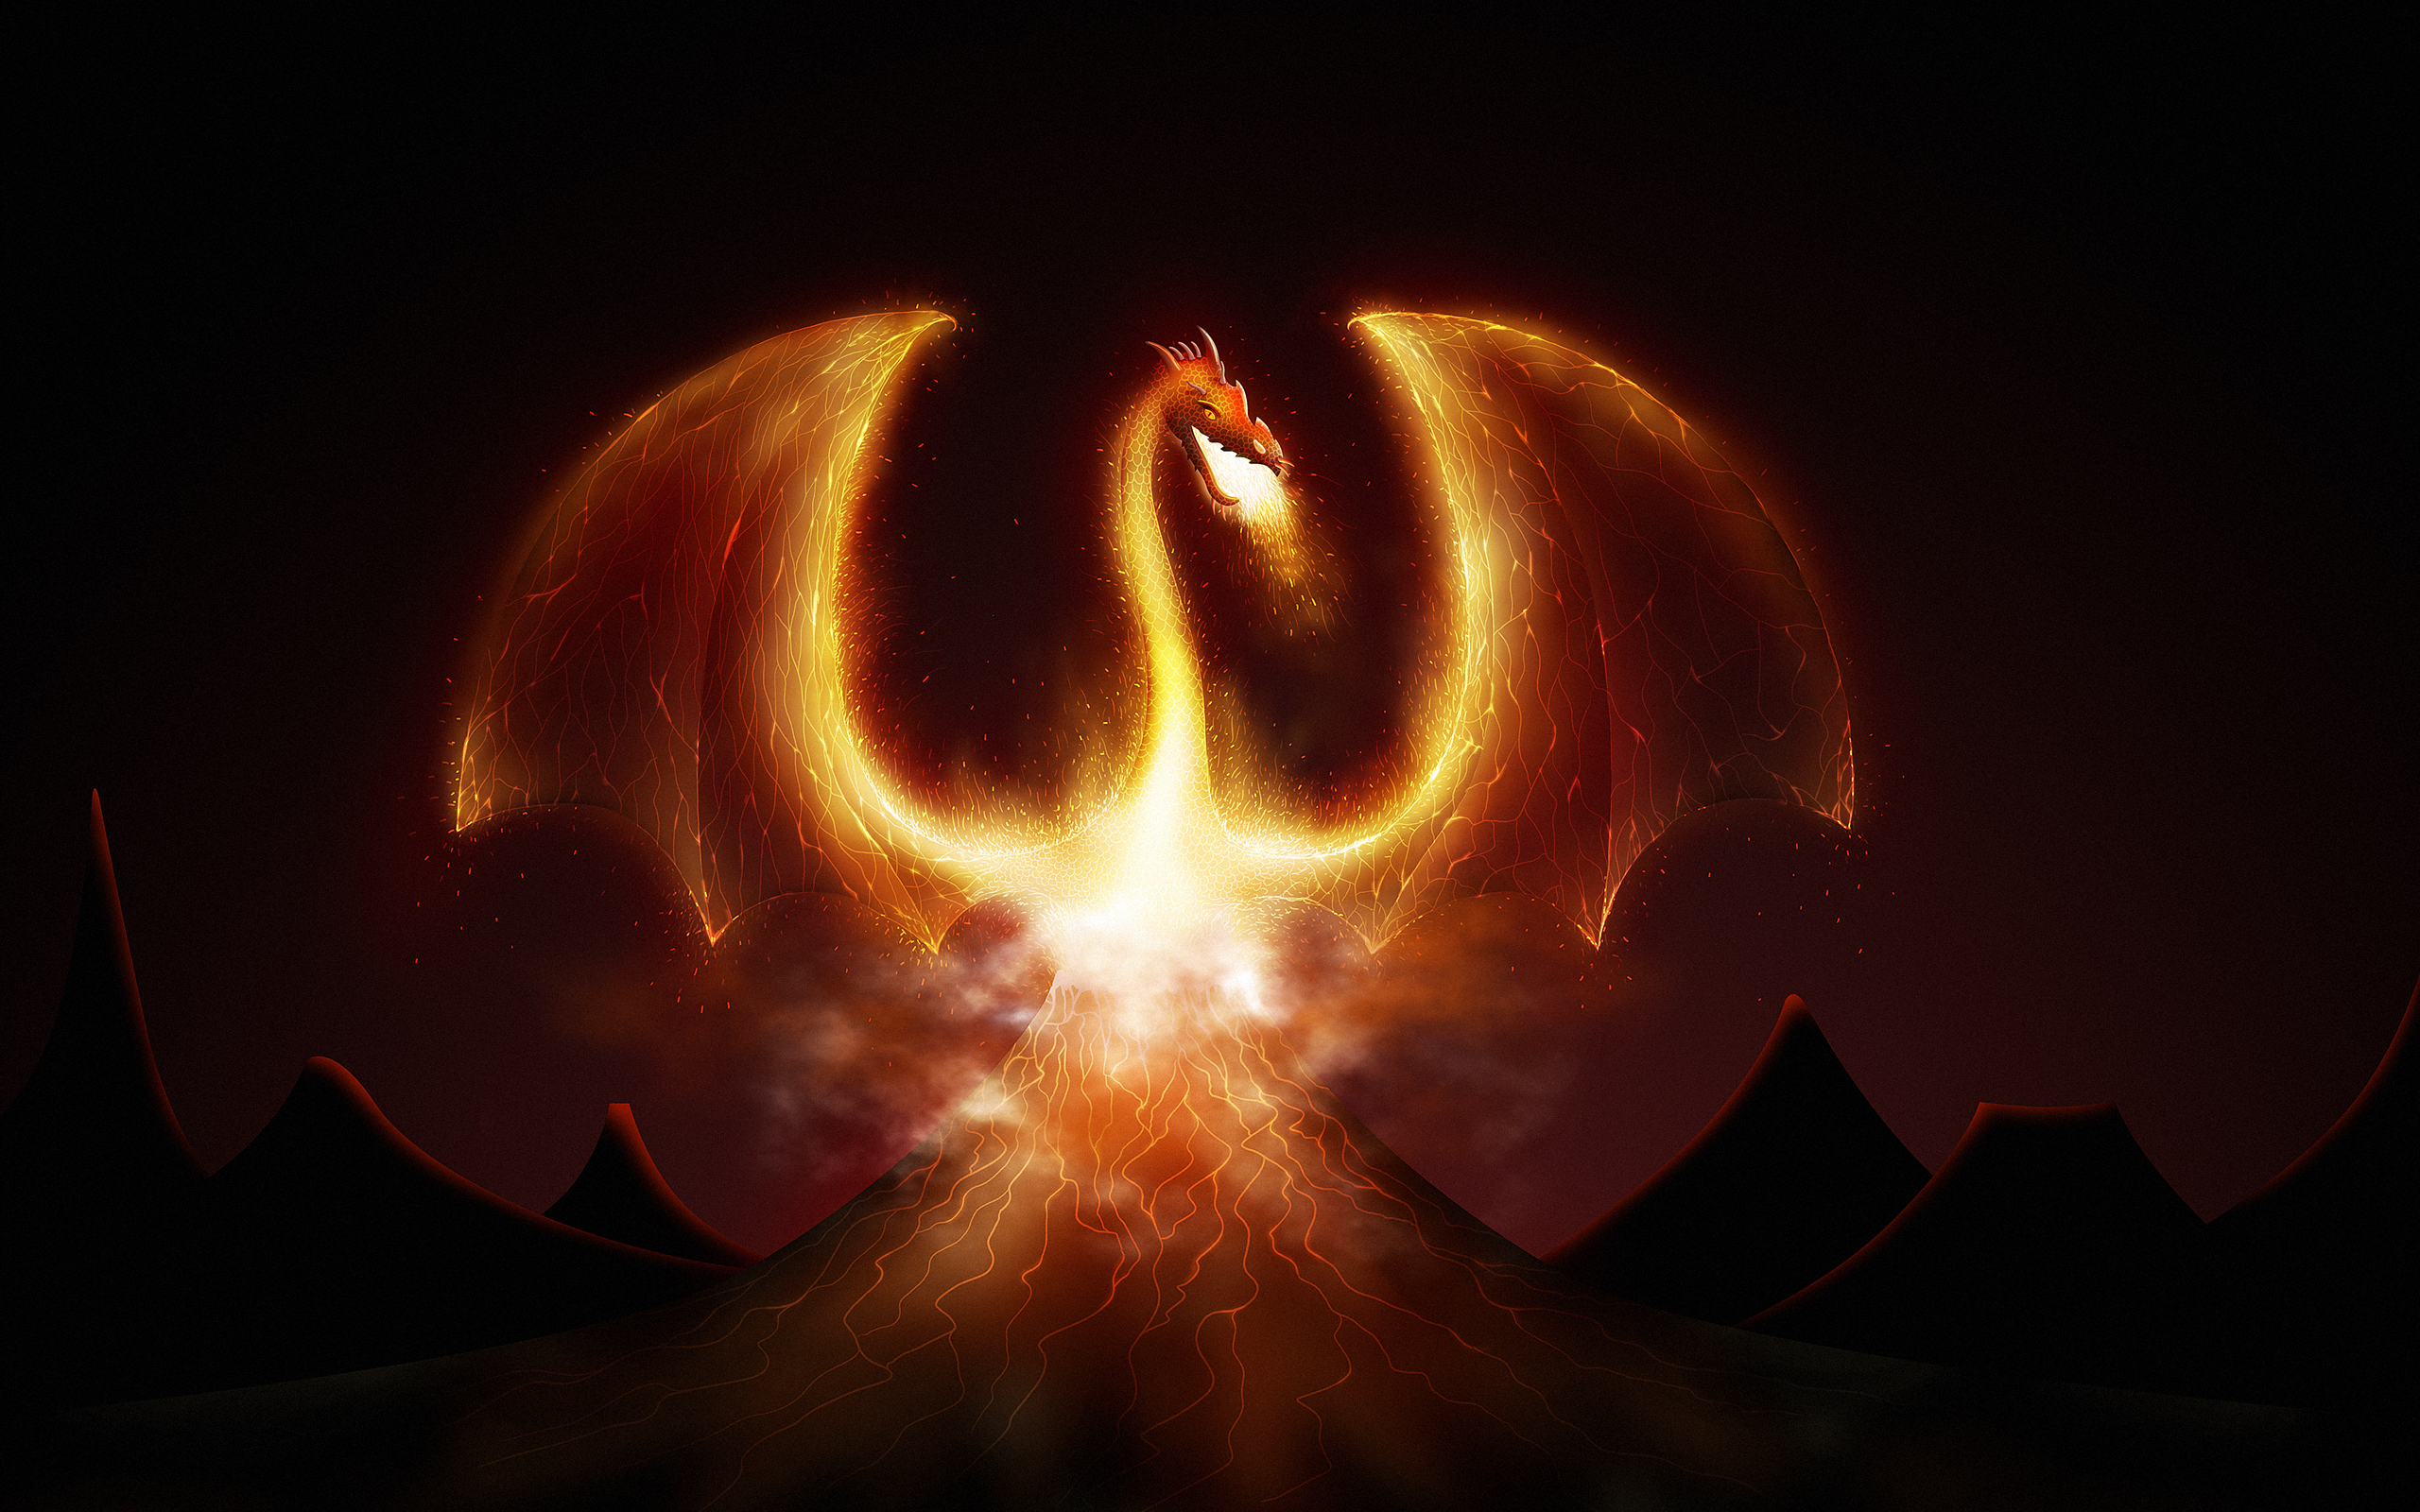 HD Wallpapers Dragon Fire